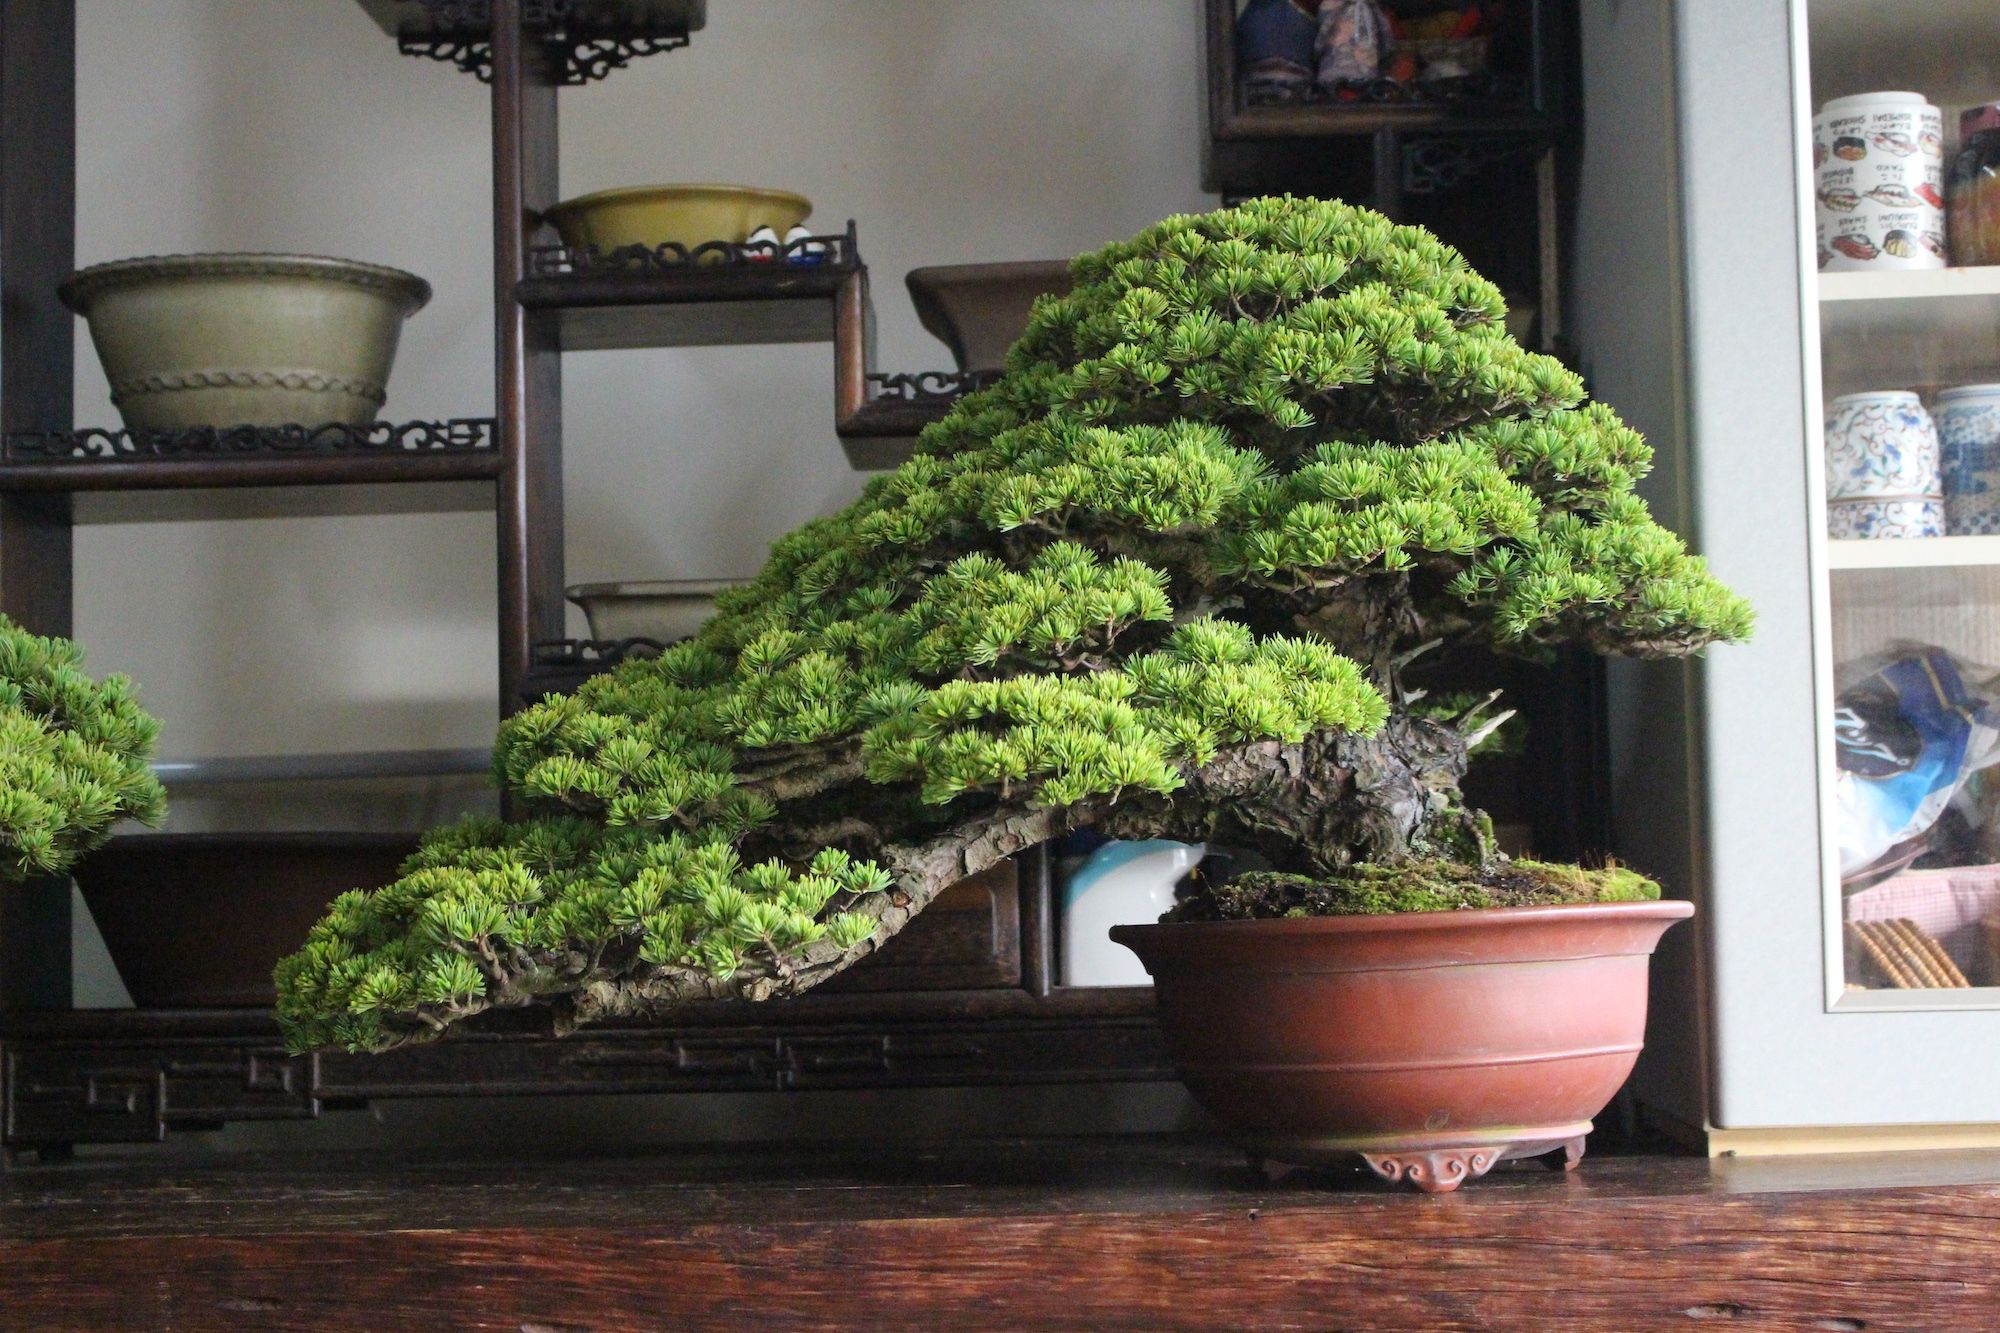 Growing and caring for a Bonsai tree #bonsaiplants